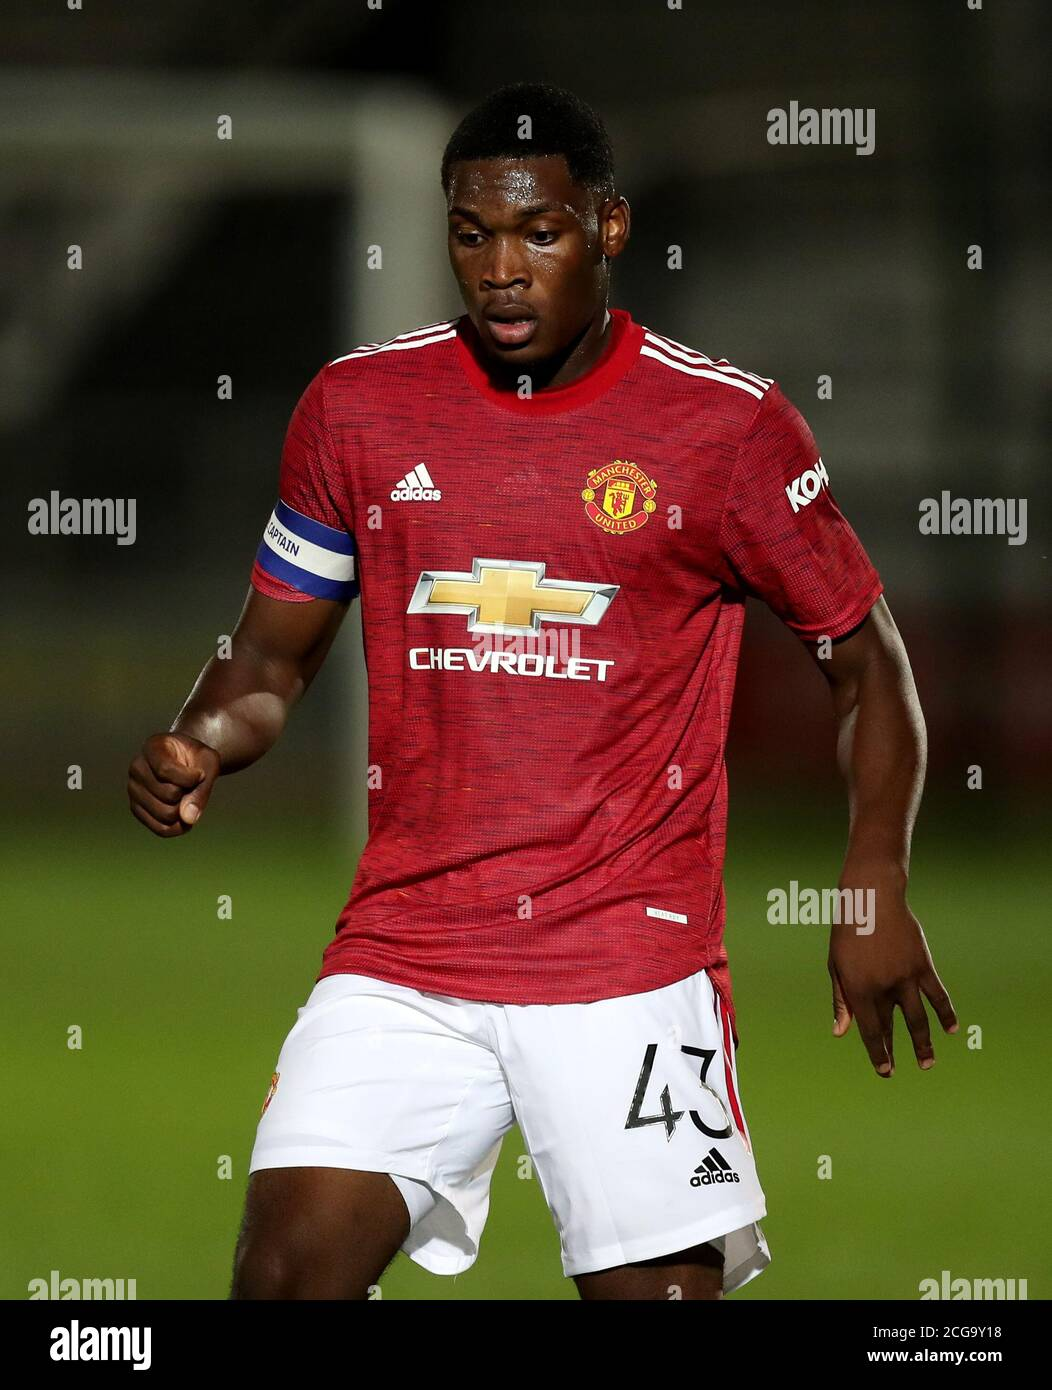 Manchester United's Teden Mengi during the EFL Trophy Northern Group B match at the Peninsula Stadium, Salford Stock Photo - Alamy